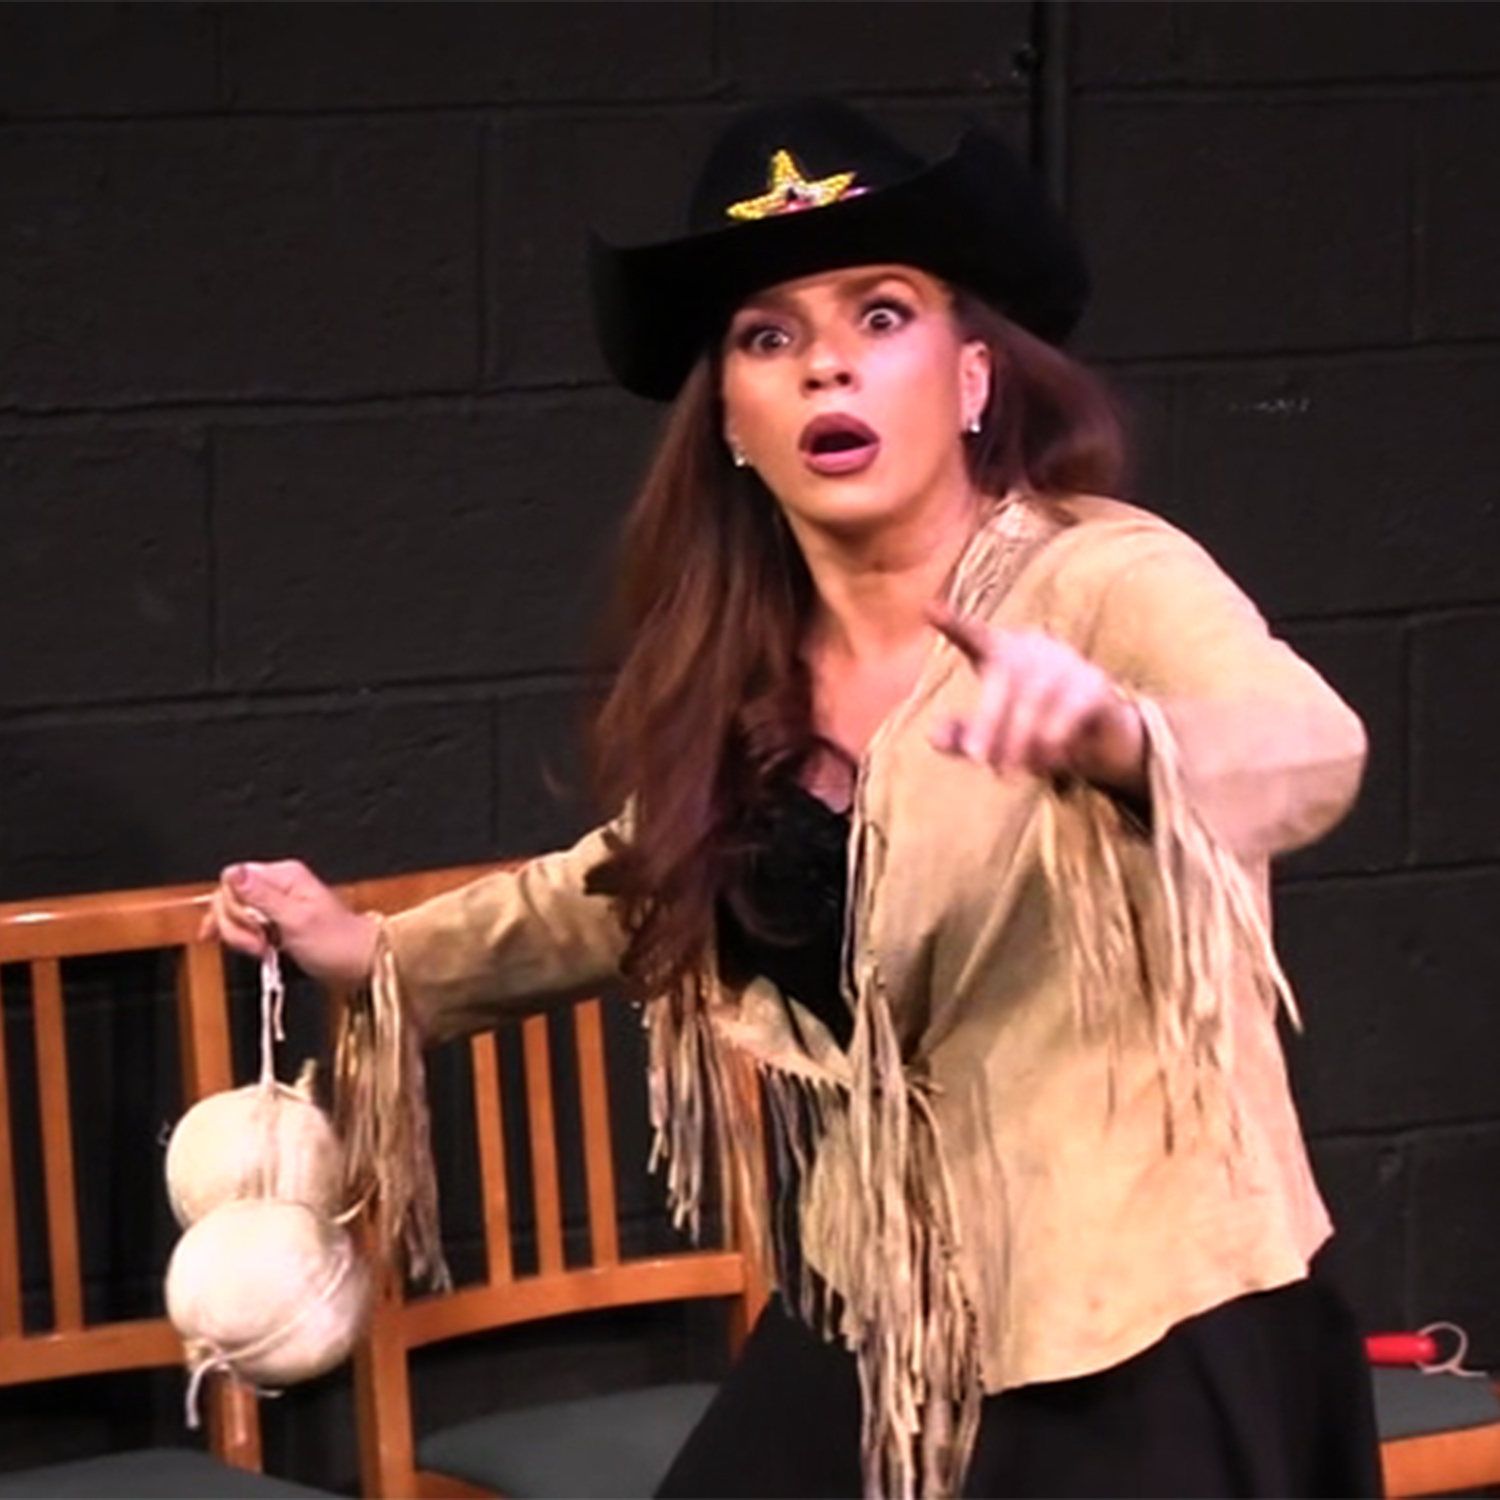 BWW Reviews: Carolann Valentino's BURNT AT THE STEAK is a Unique One-Woman Musical Comedy